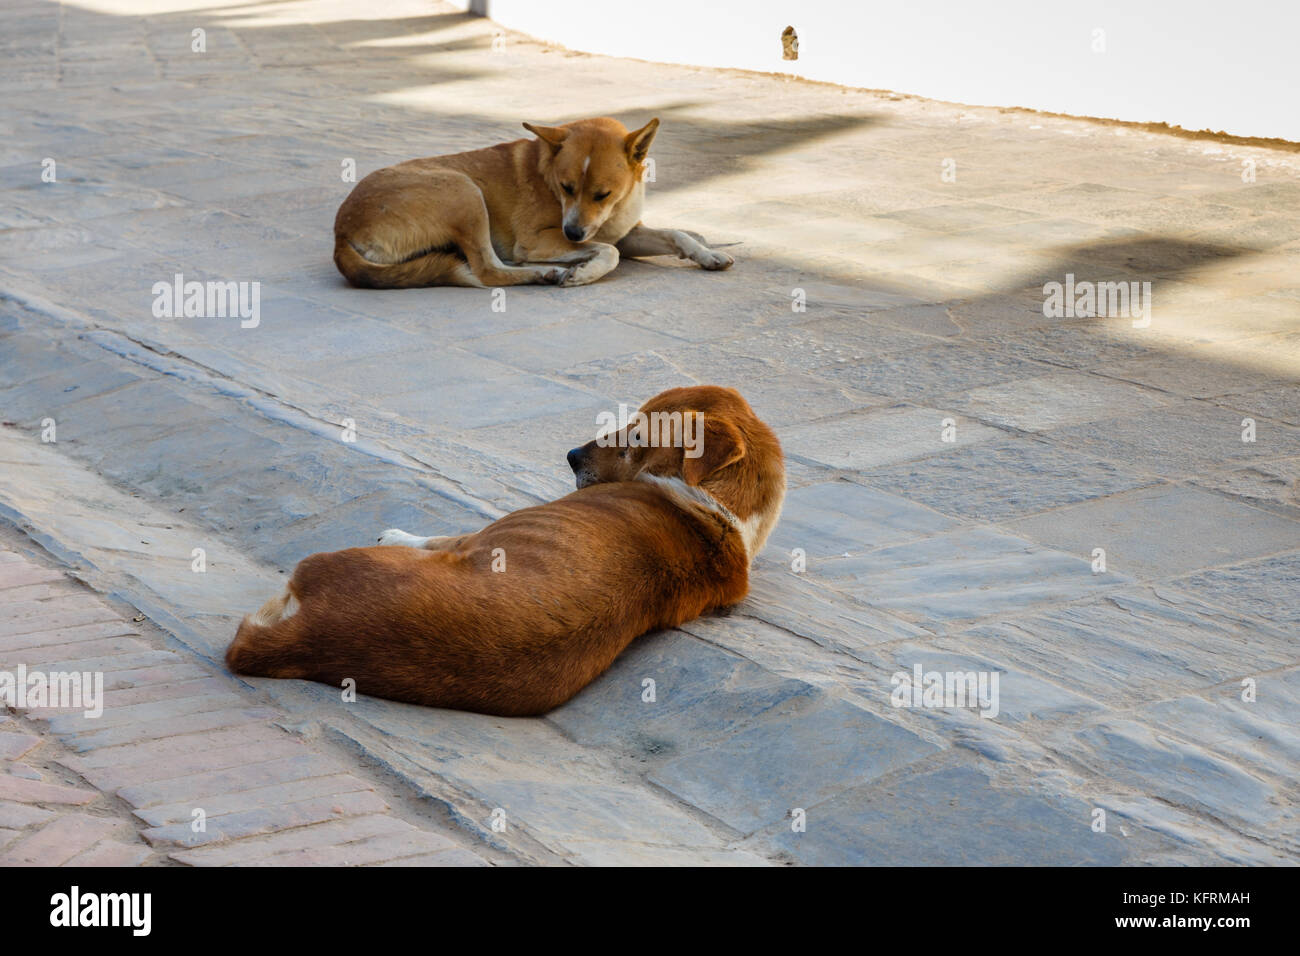 two red dogs lie on a stone tile - Stock Image